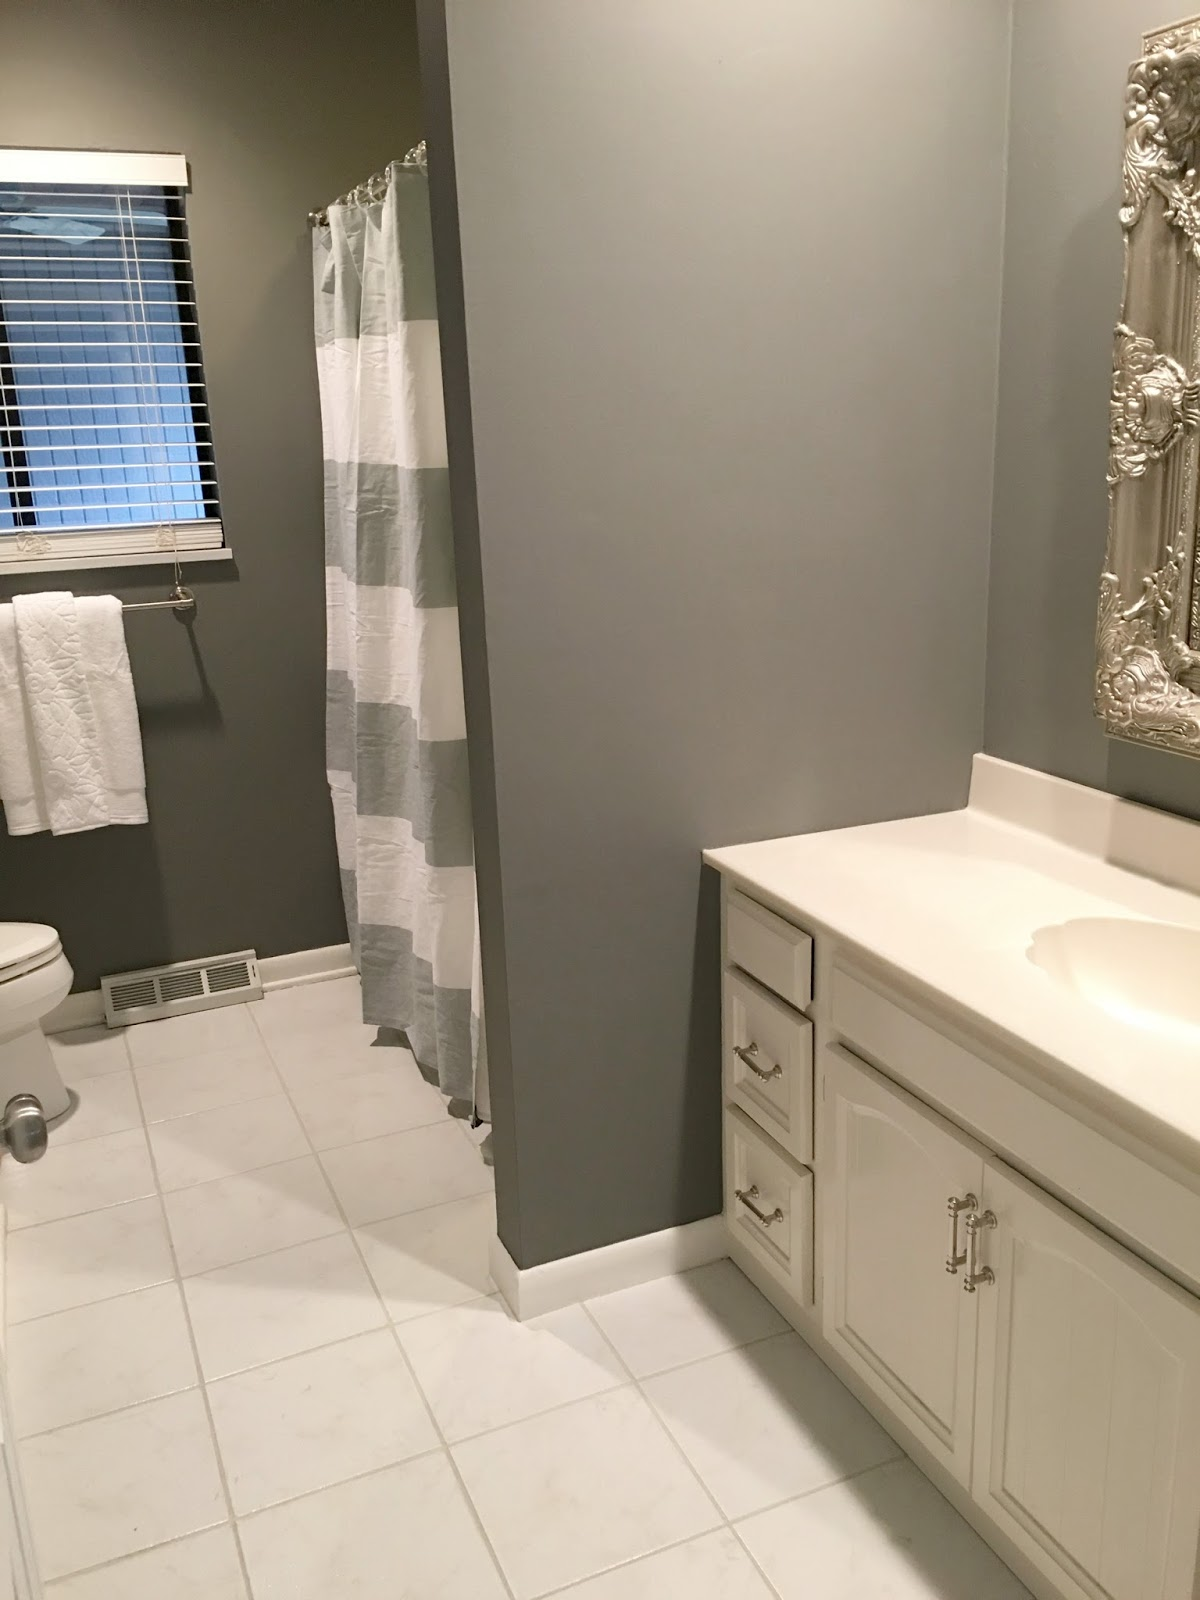 Nice DIY Bathroom Remodel on a Budget